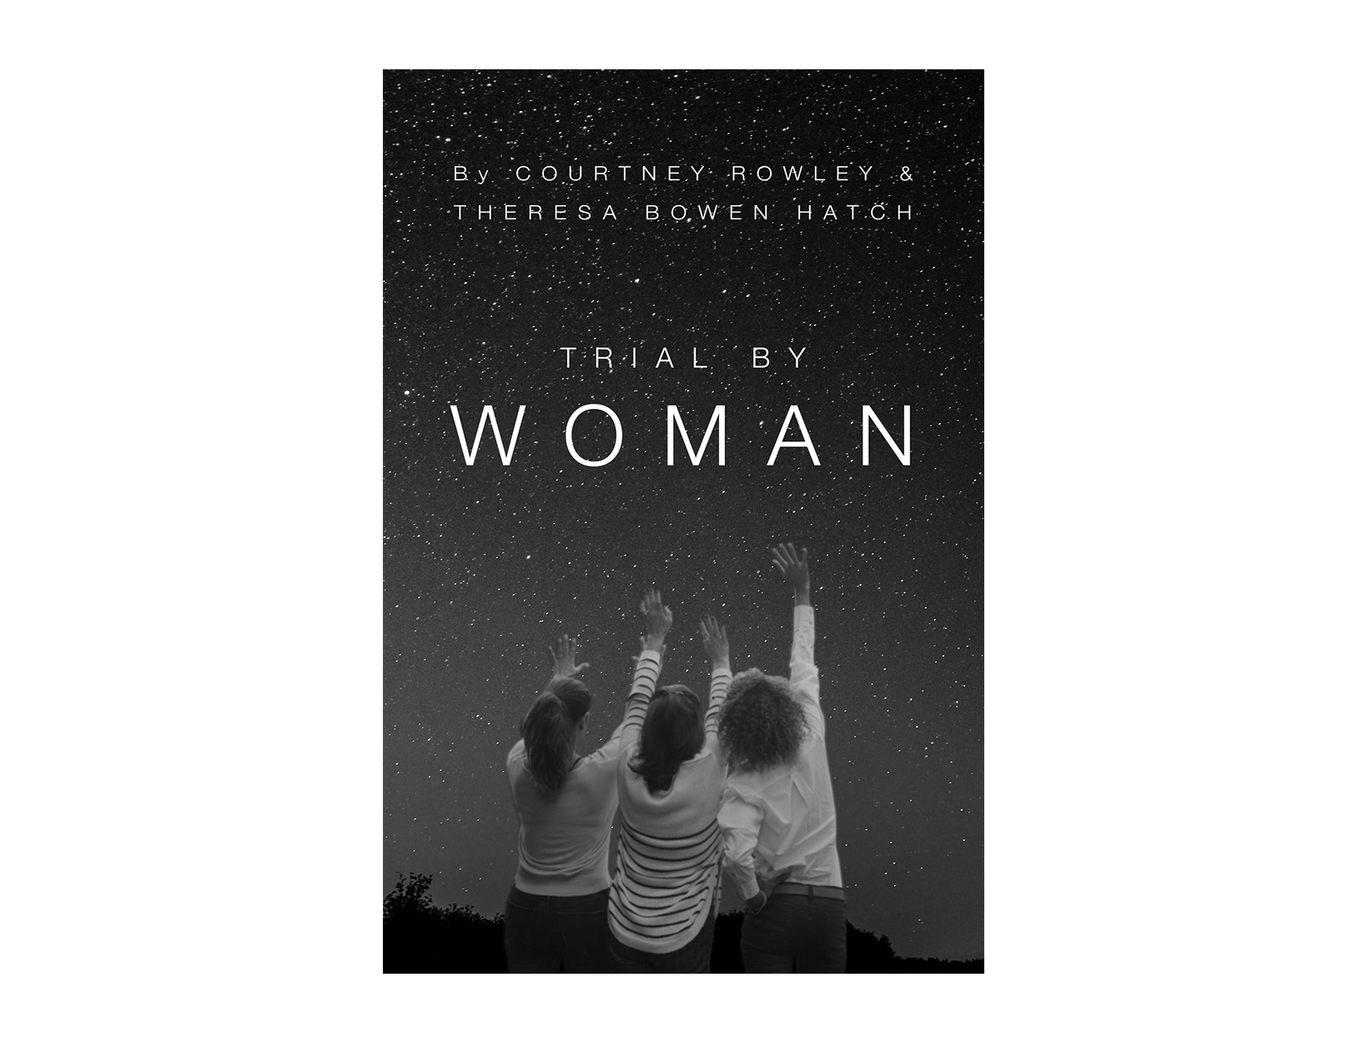 <em>Trial by Woman</em> by Courtney Rowley and Theresa Bowen Hatch